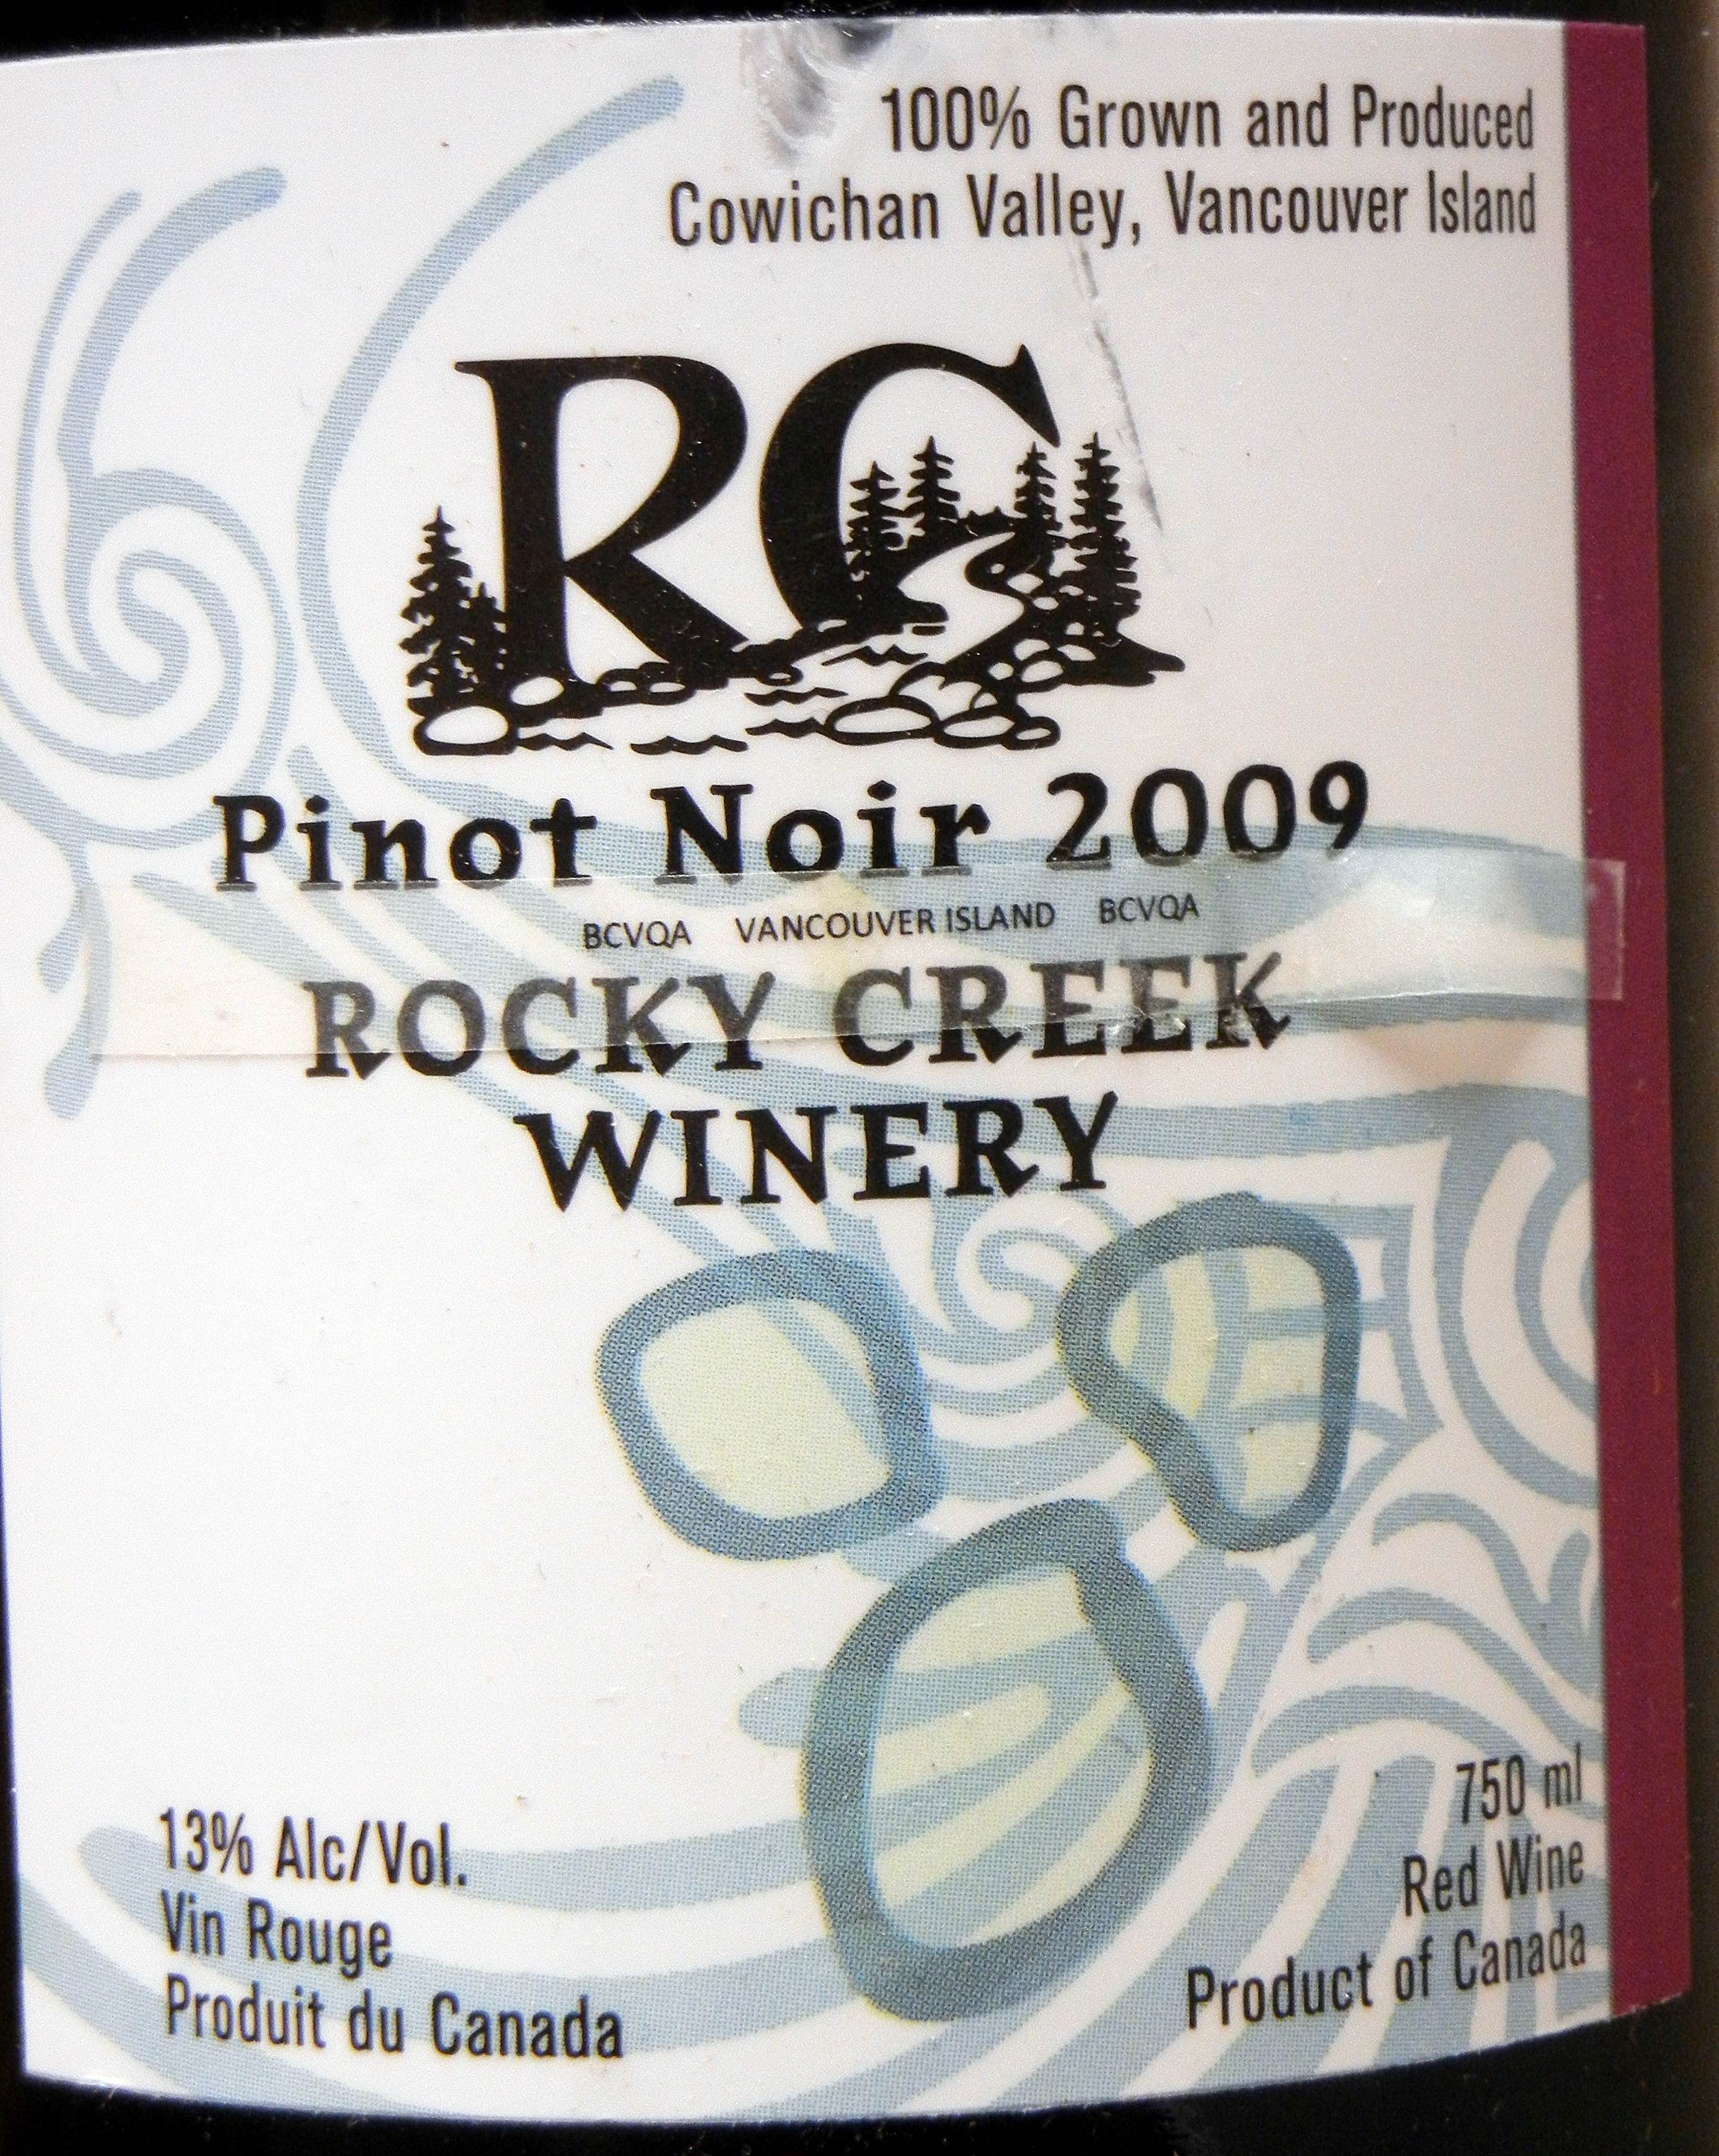 Rocky Creek Pinot Noir 2009 Label - BC Pinot Noir Tasting Review 9